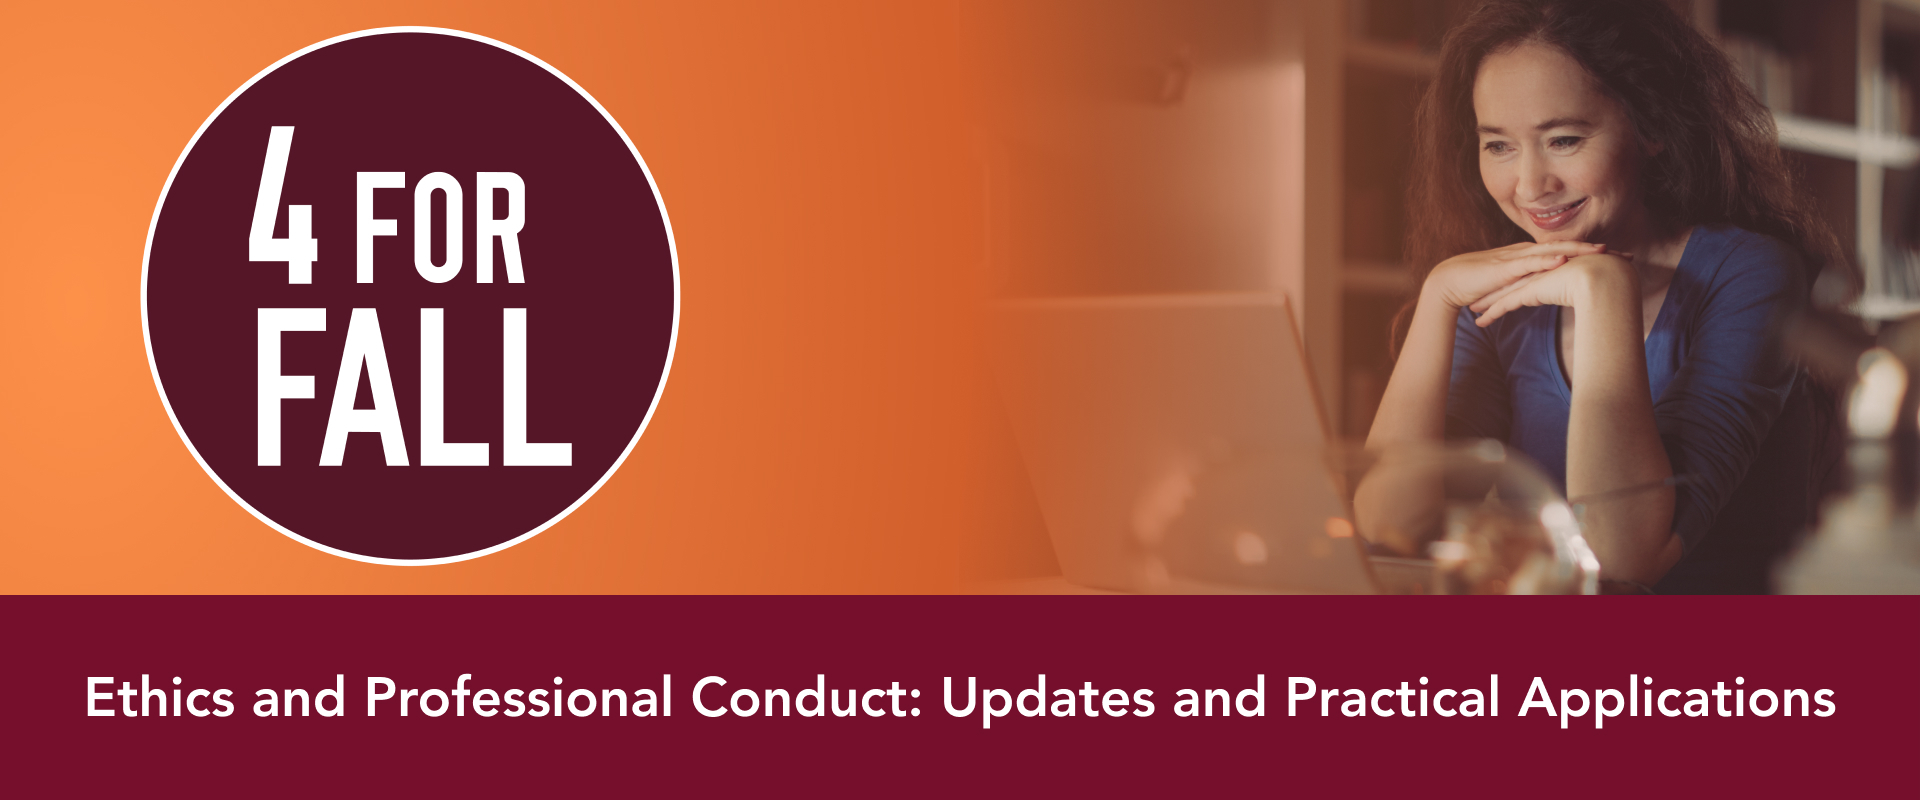 Four For Fall: Ethics and Professional Conduct: Updates and Practical Applications